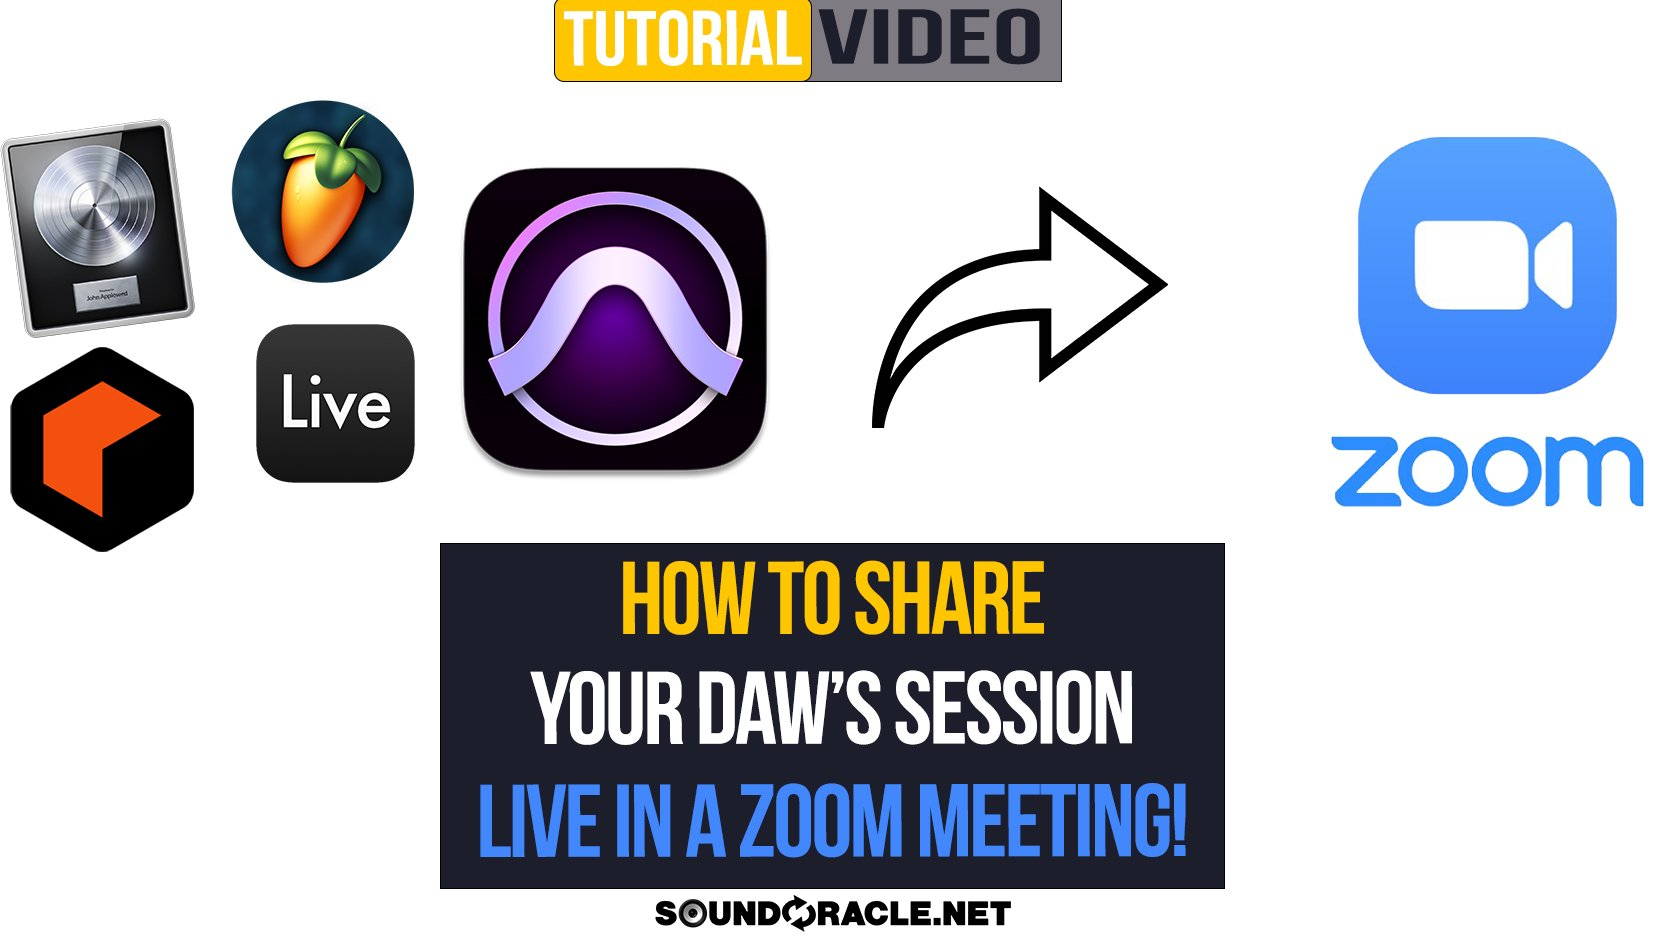 How To Share Your DAW's Zoom Session Live In A Zoom Meeting!